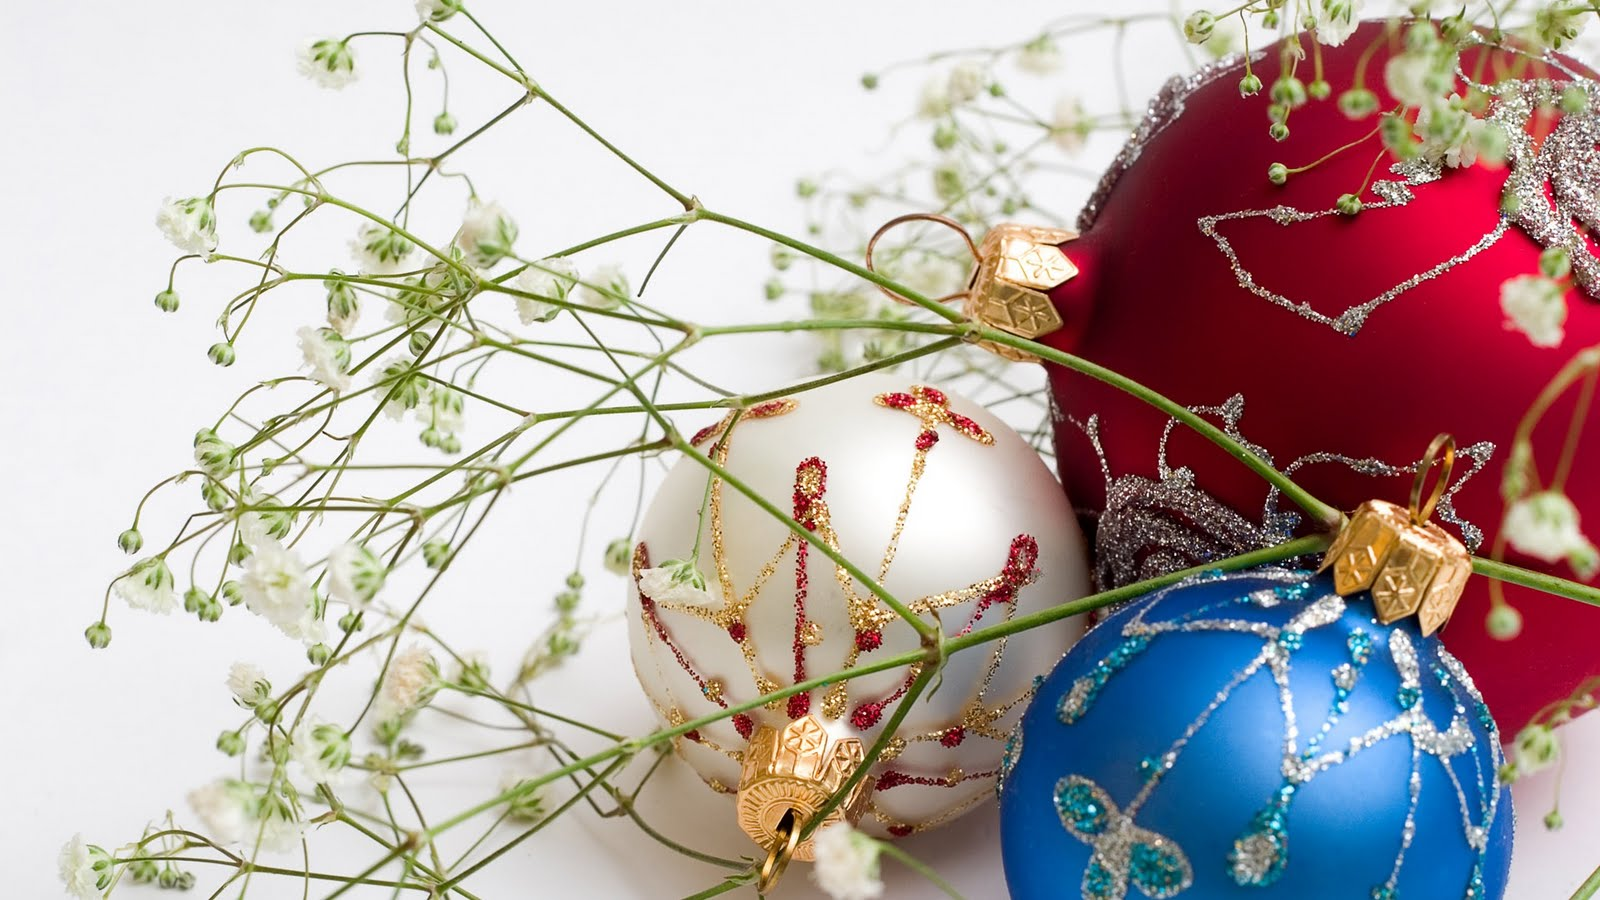 Crocheted Christmas Ornaments Pictures Wallpapers